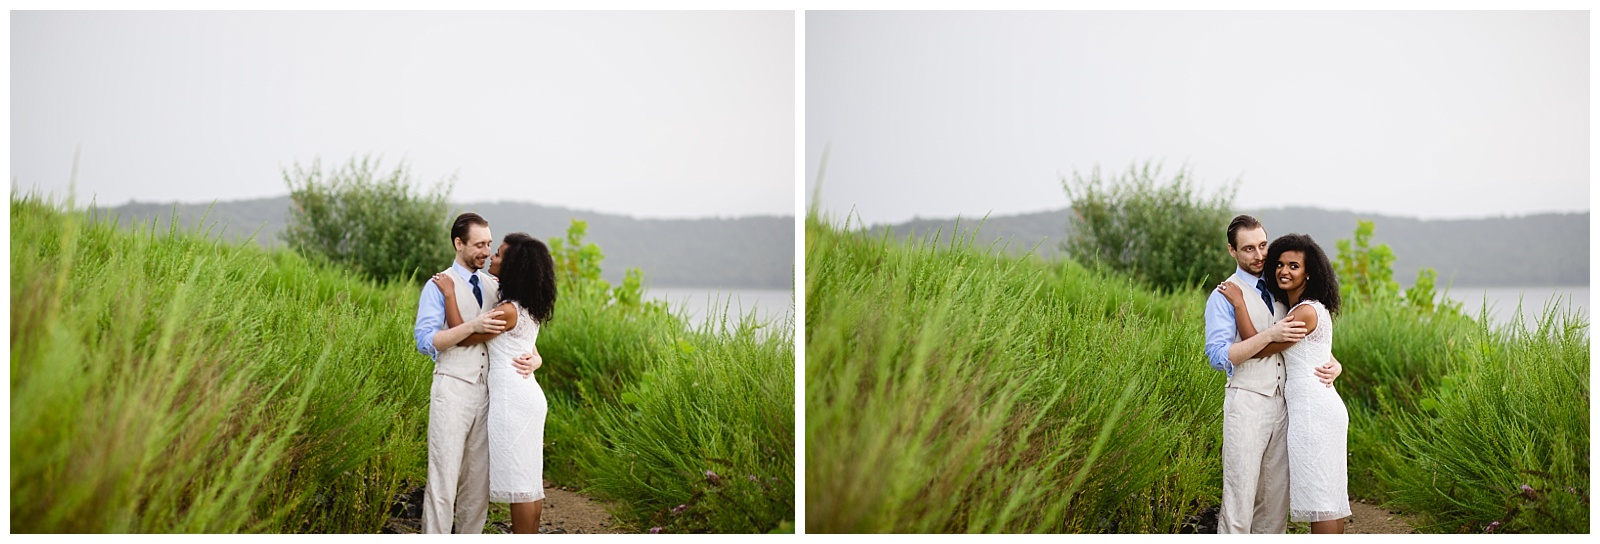 round valley photography round valley reservoir engagement photography round valley reservoir photos round valley reservoir wedding photos round valley engagement